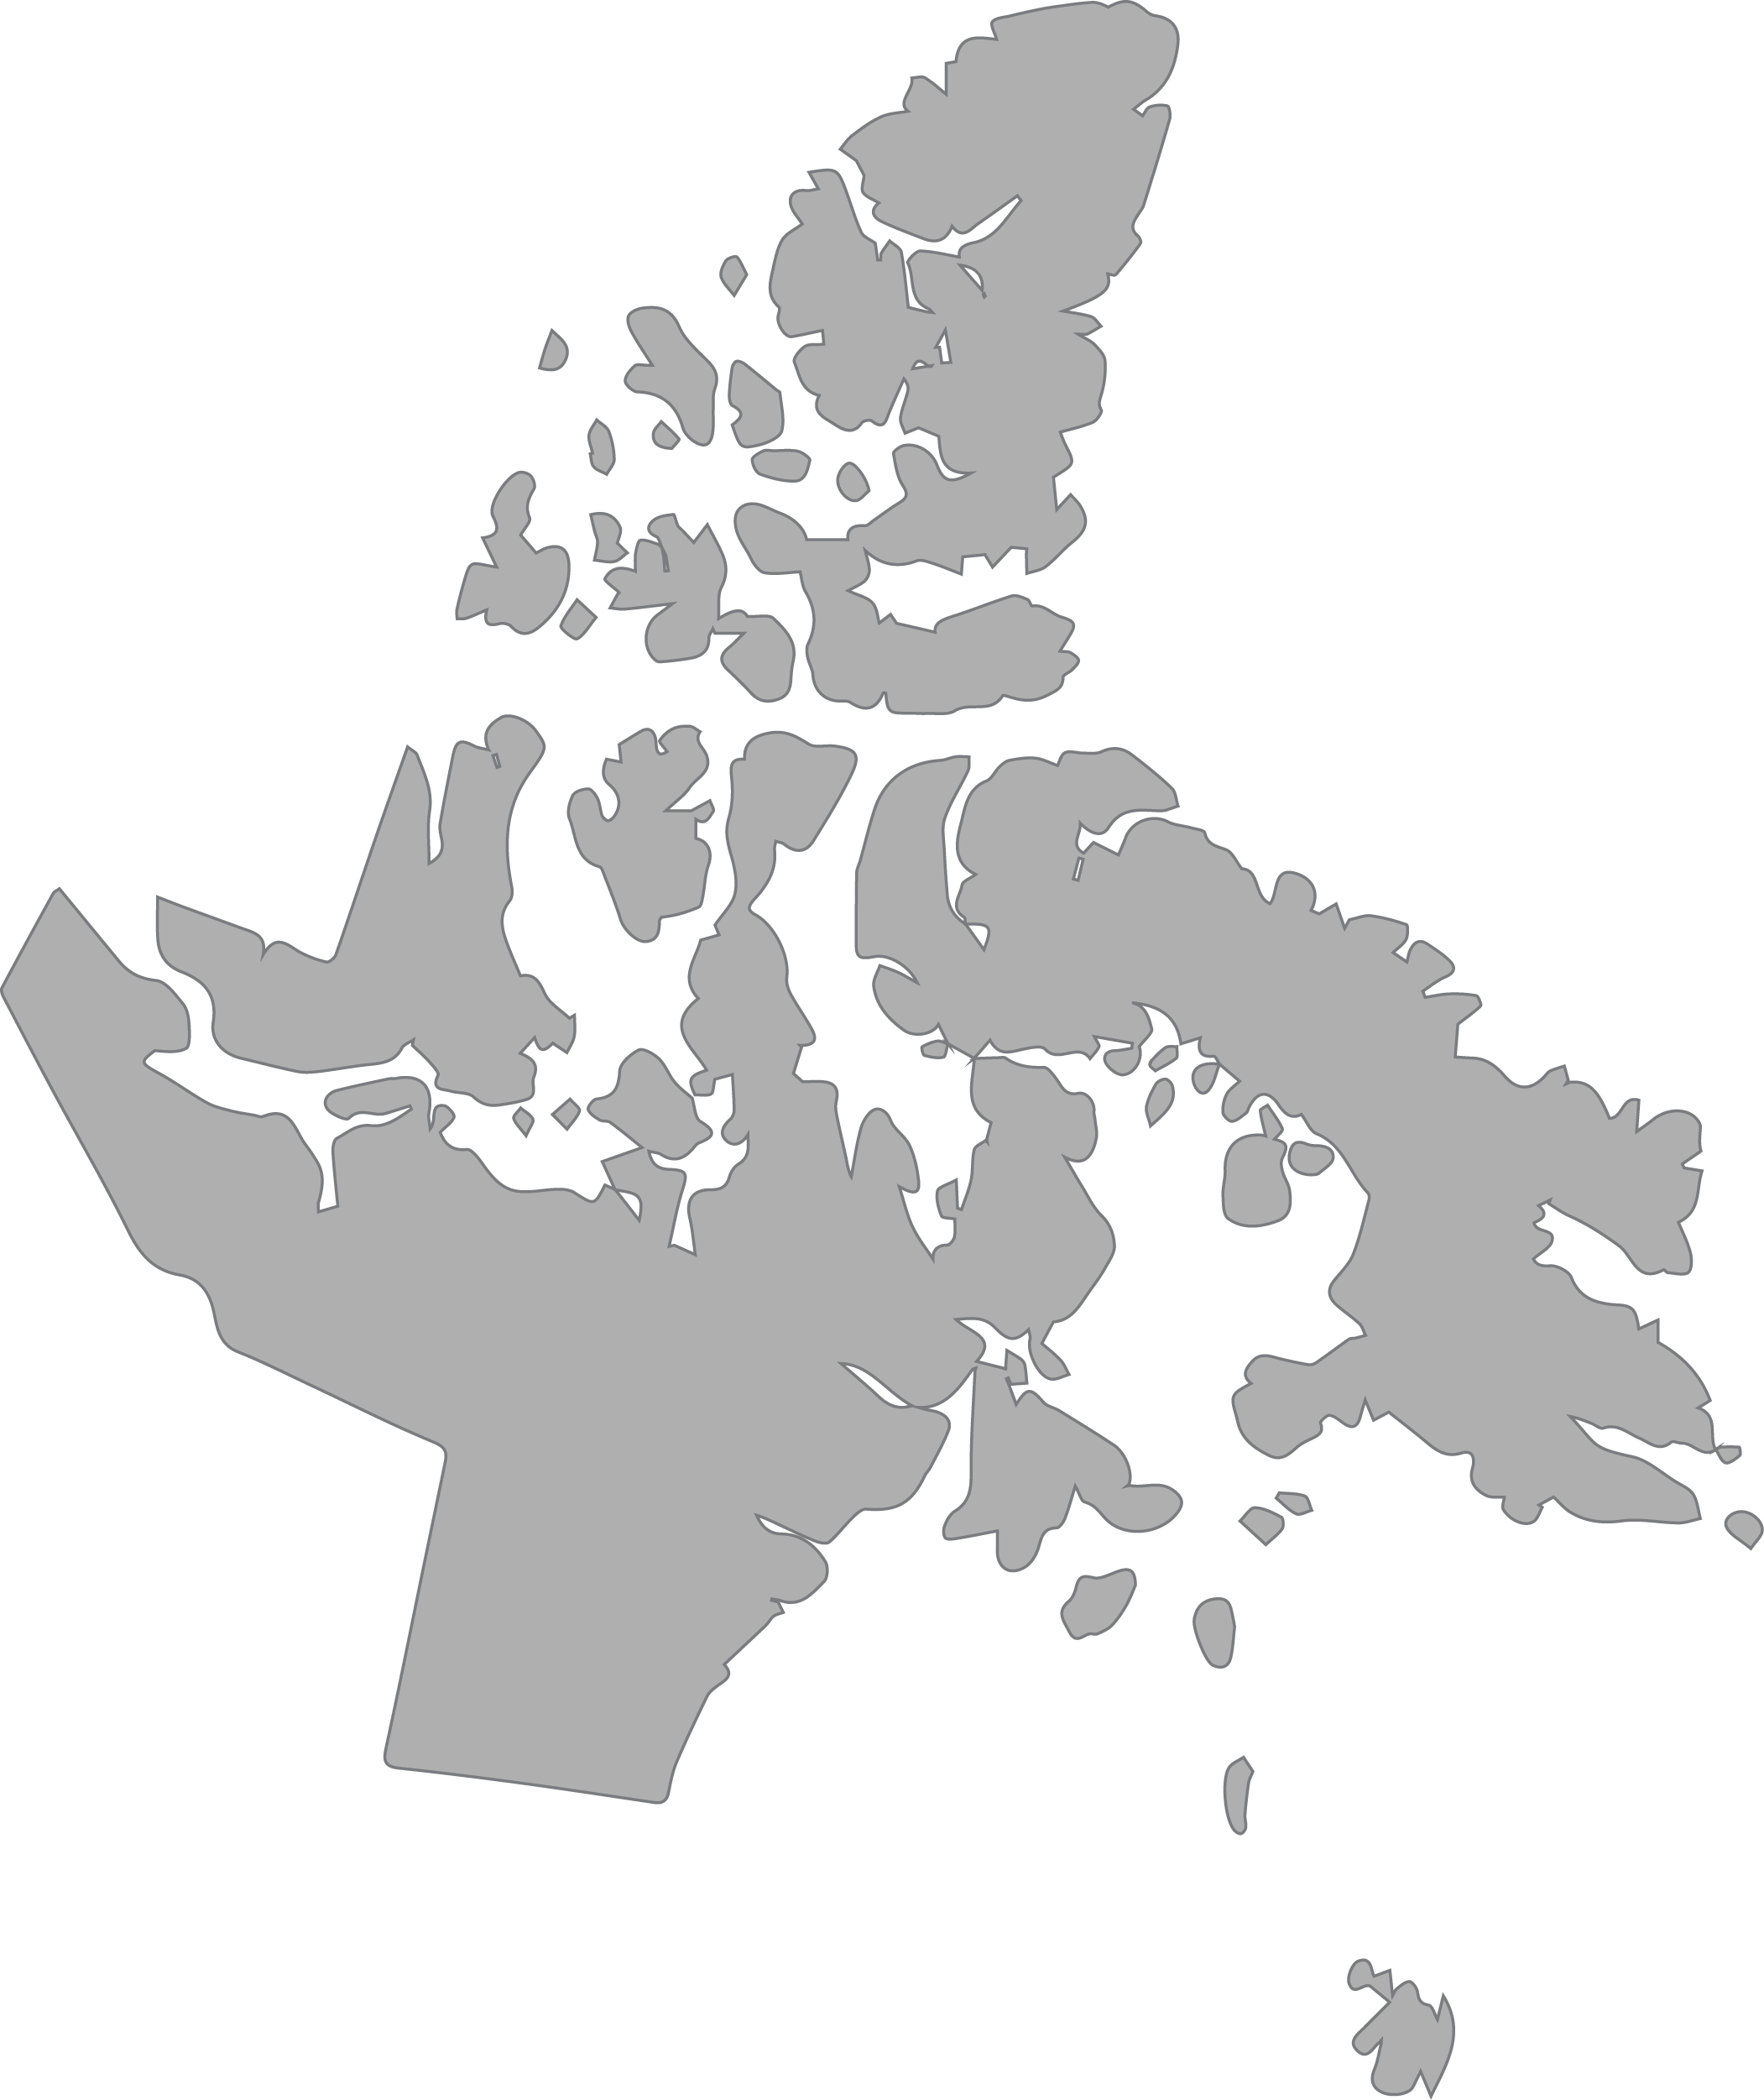 Outlined map of Nunavut